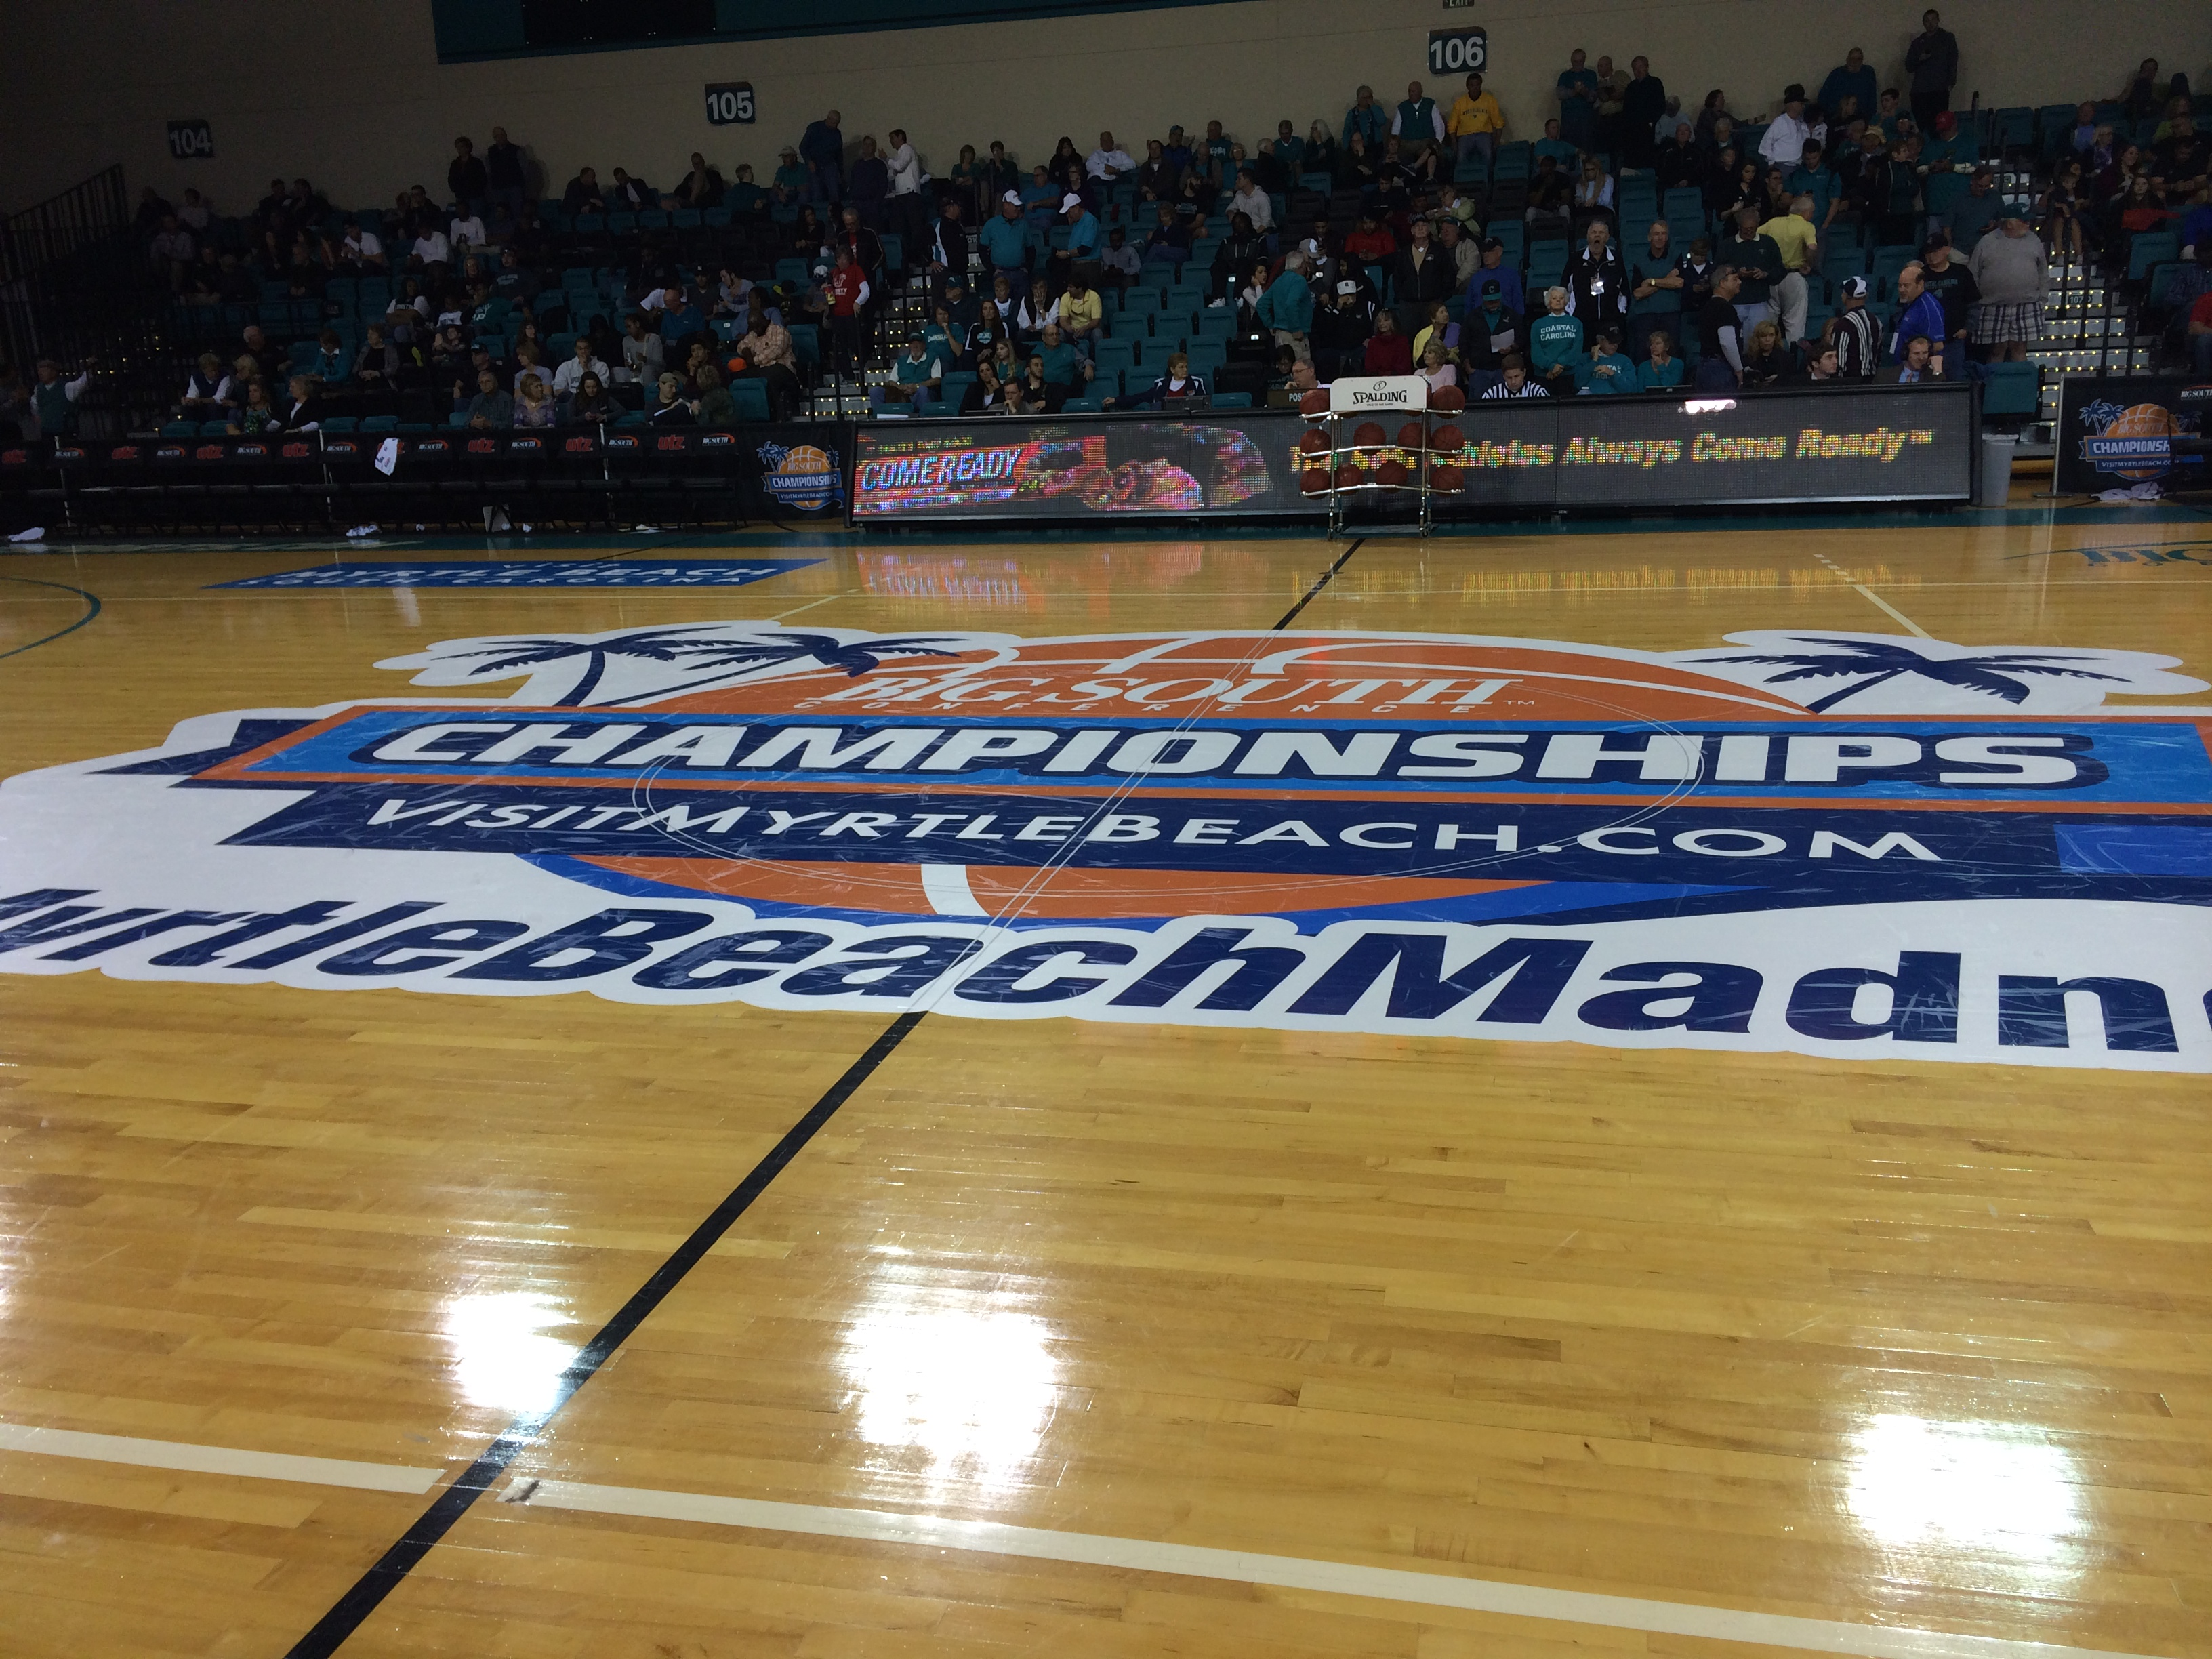 I had a great time working the Big South Championship.